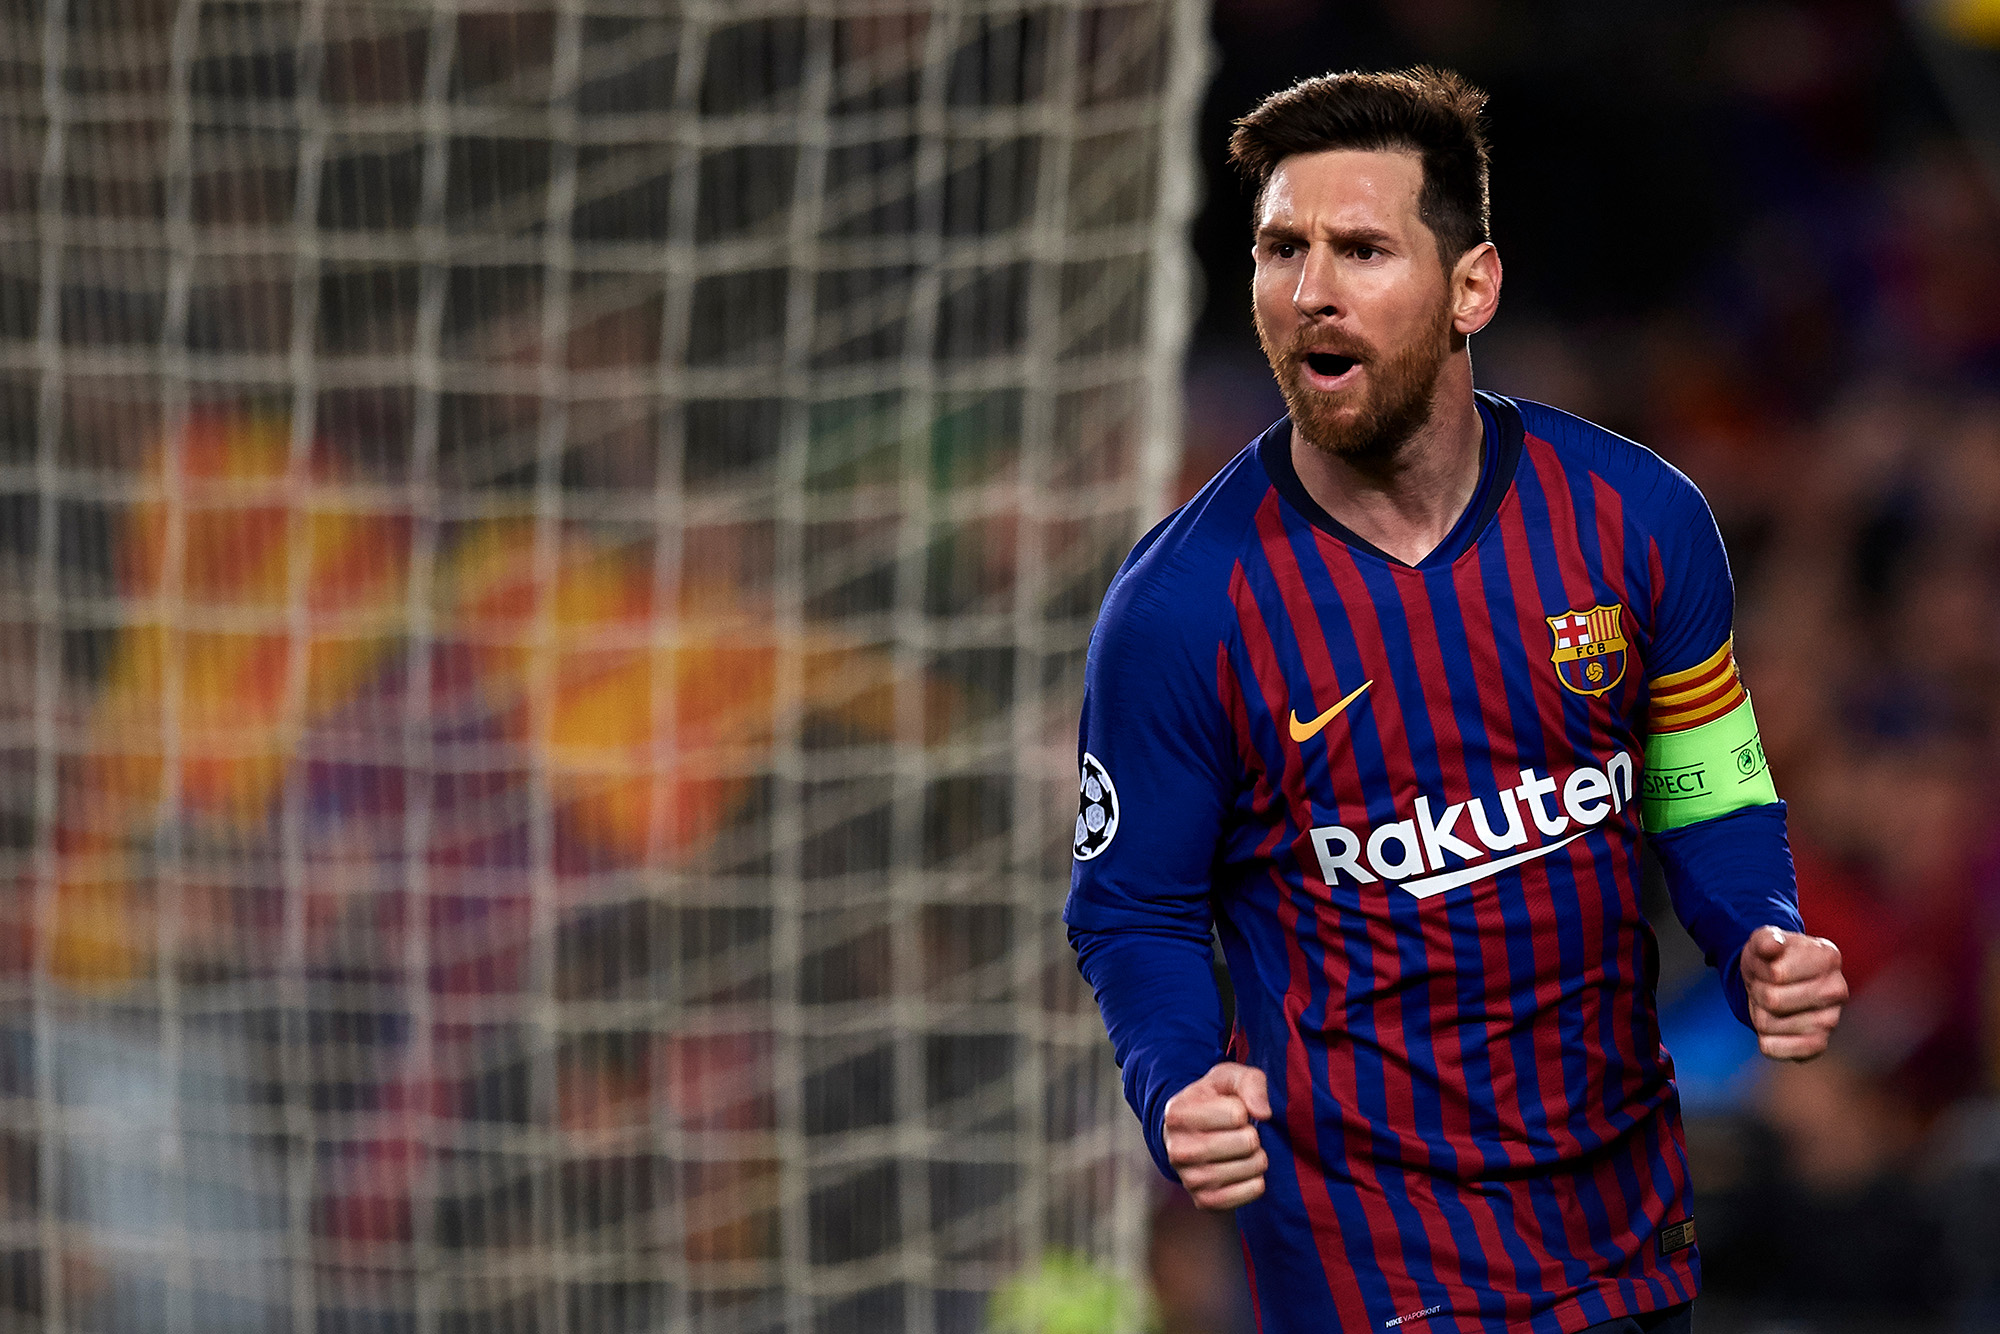 Lio is leaving Barcelona FC | Chooses Manchester City as the Next Destination